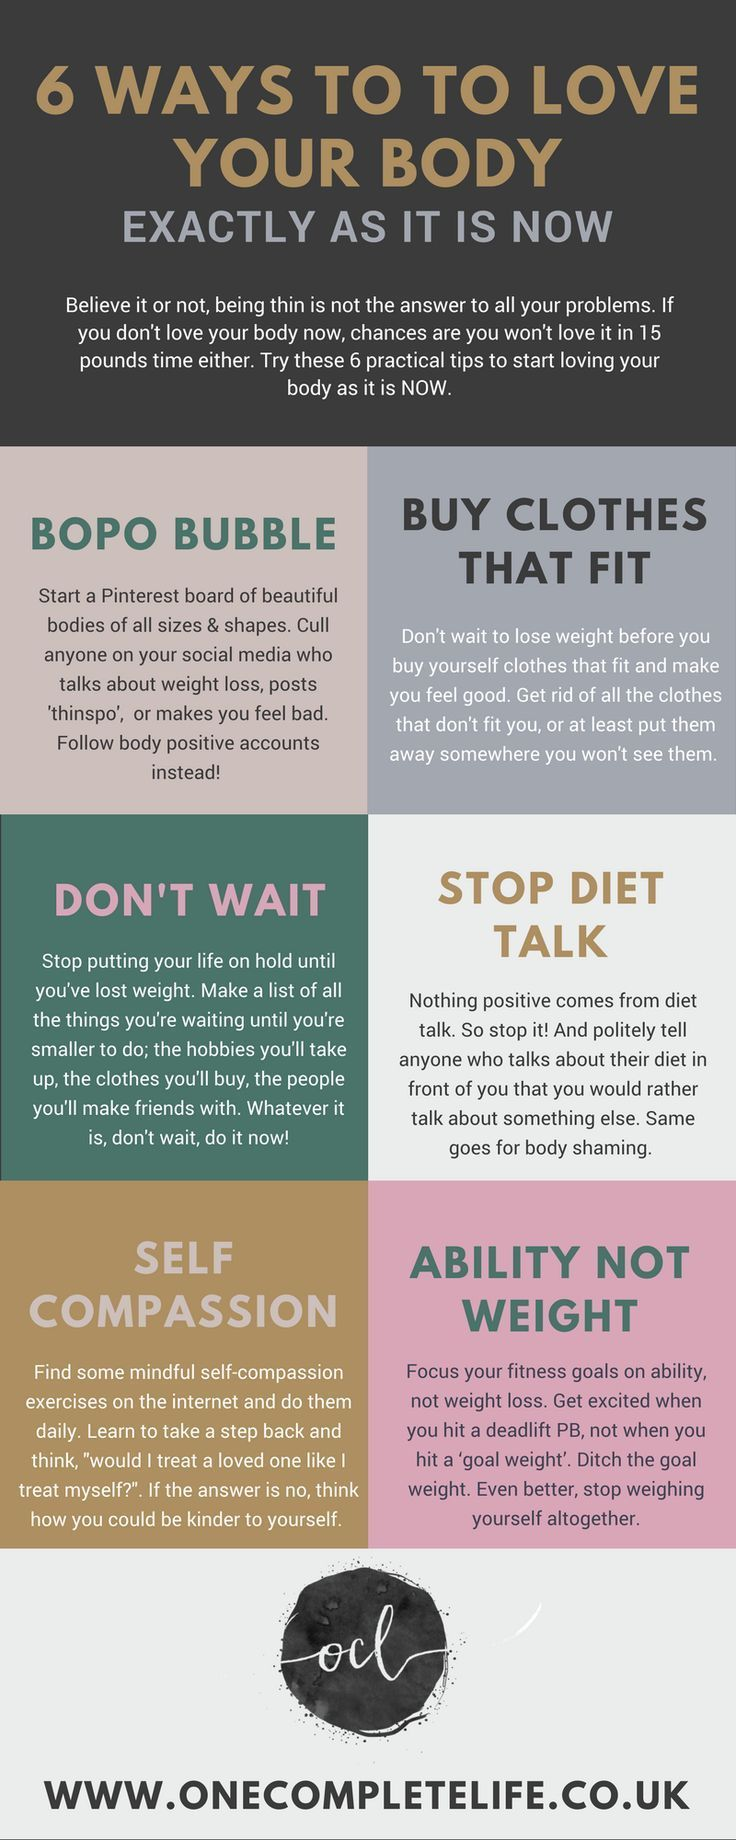 6 practical, body positive tips to start loving your body exactly as it is now - One Complete Life